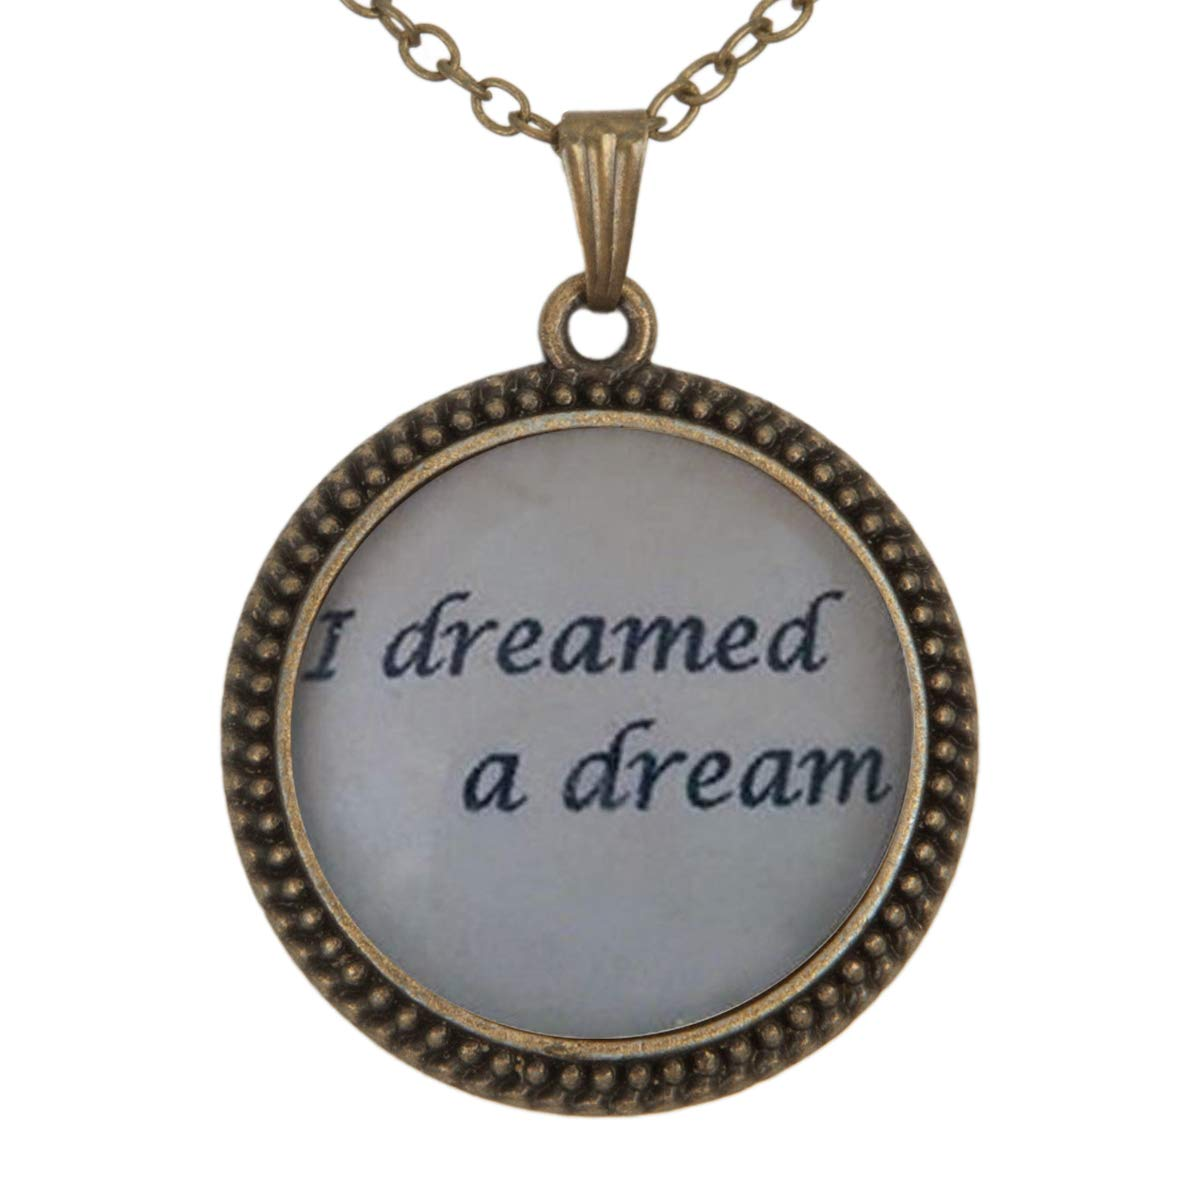 Lightrain I Dreamed a Dream Quote Pendant Necklace Vintage Bronze Chain Statement Necklace Handmade Jewelry Gifts